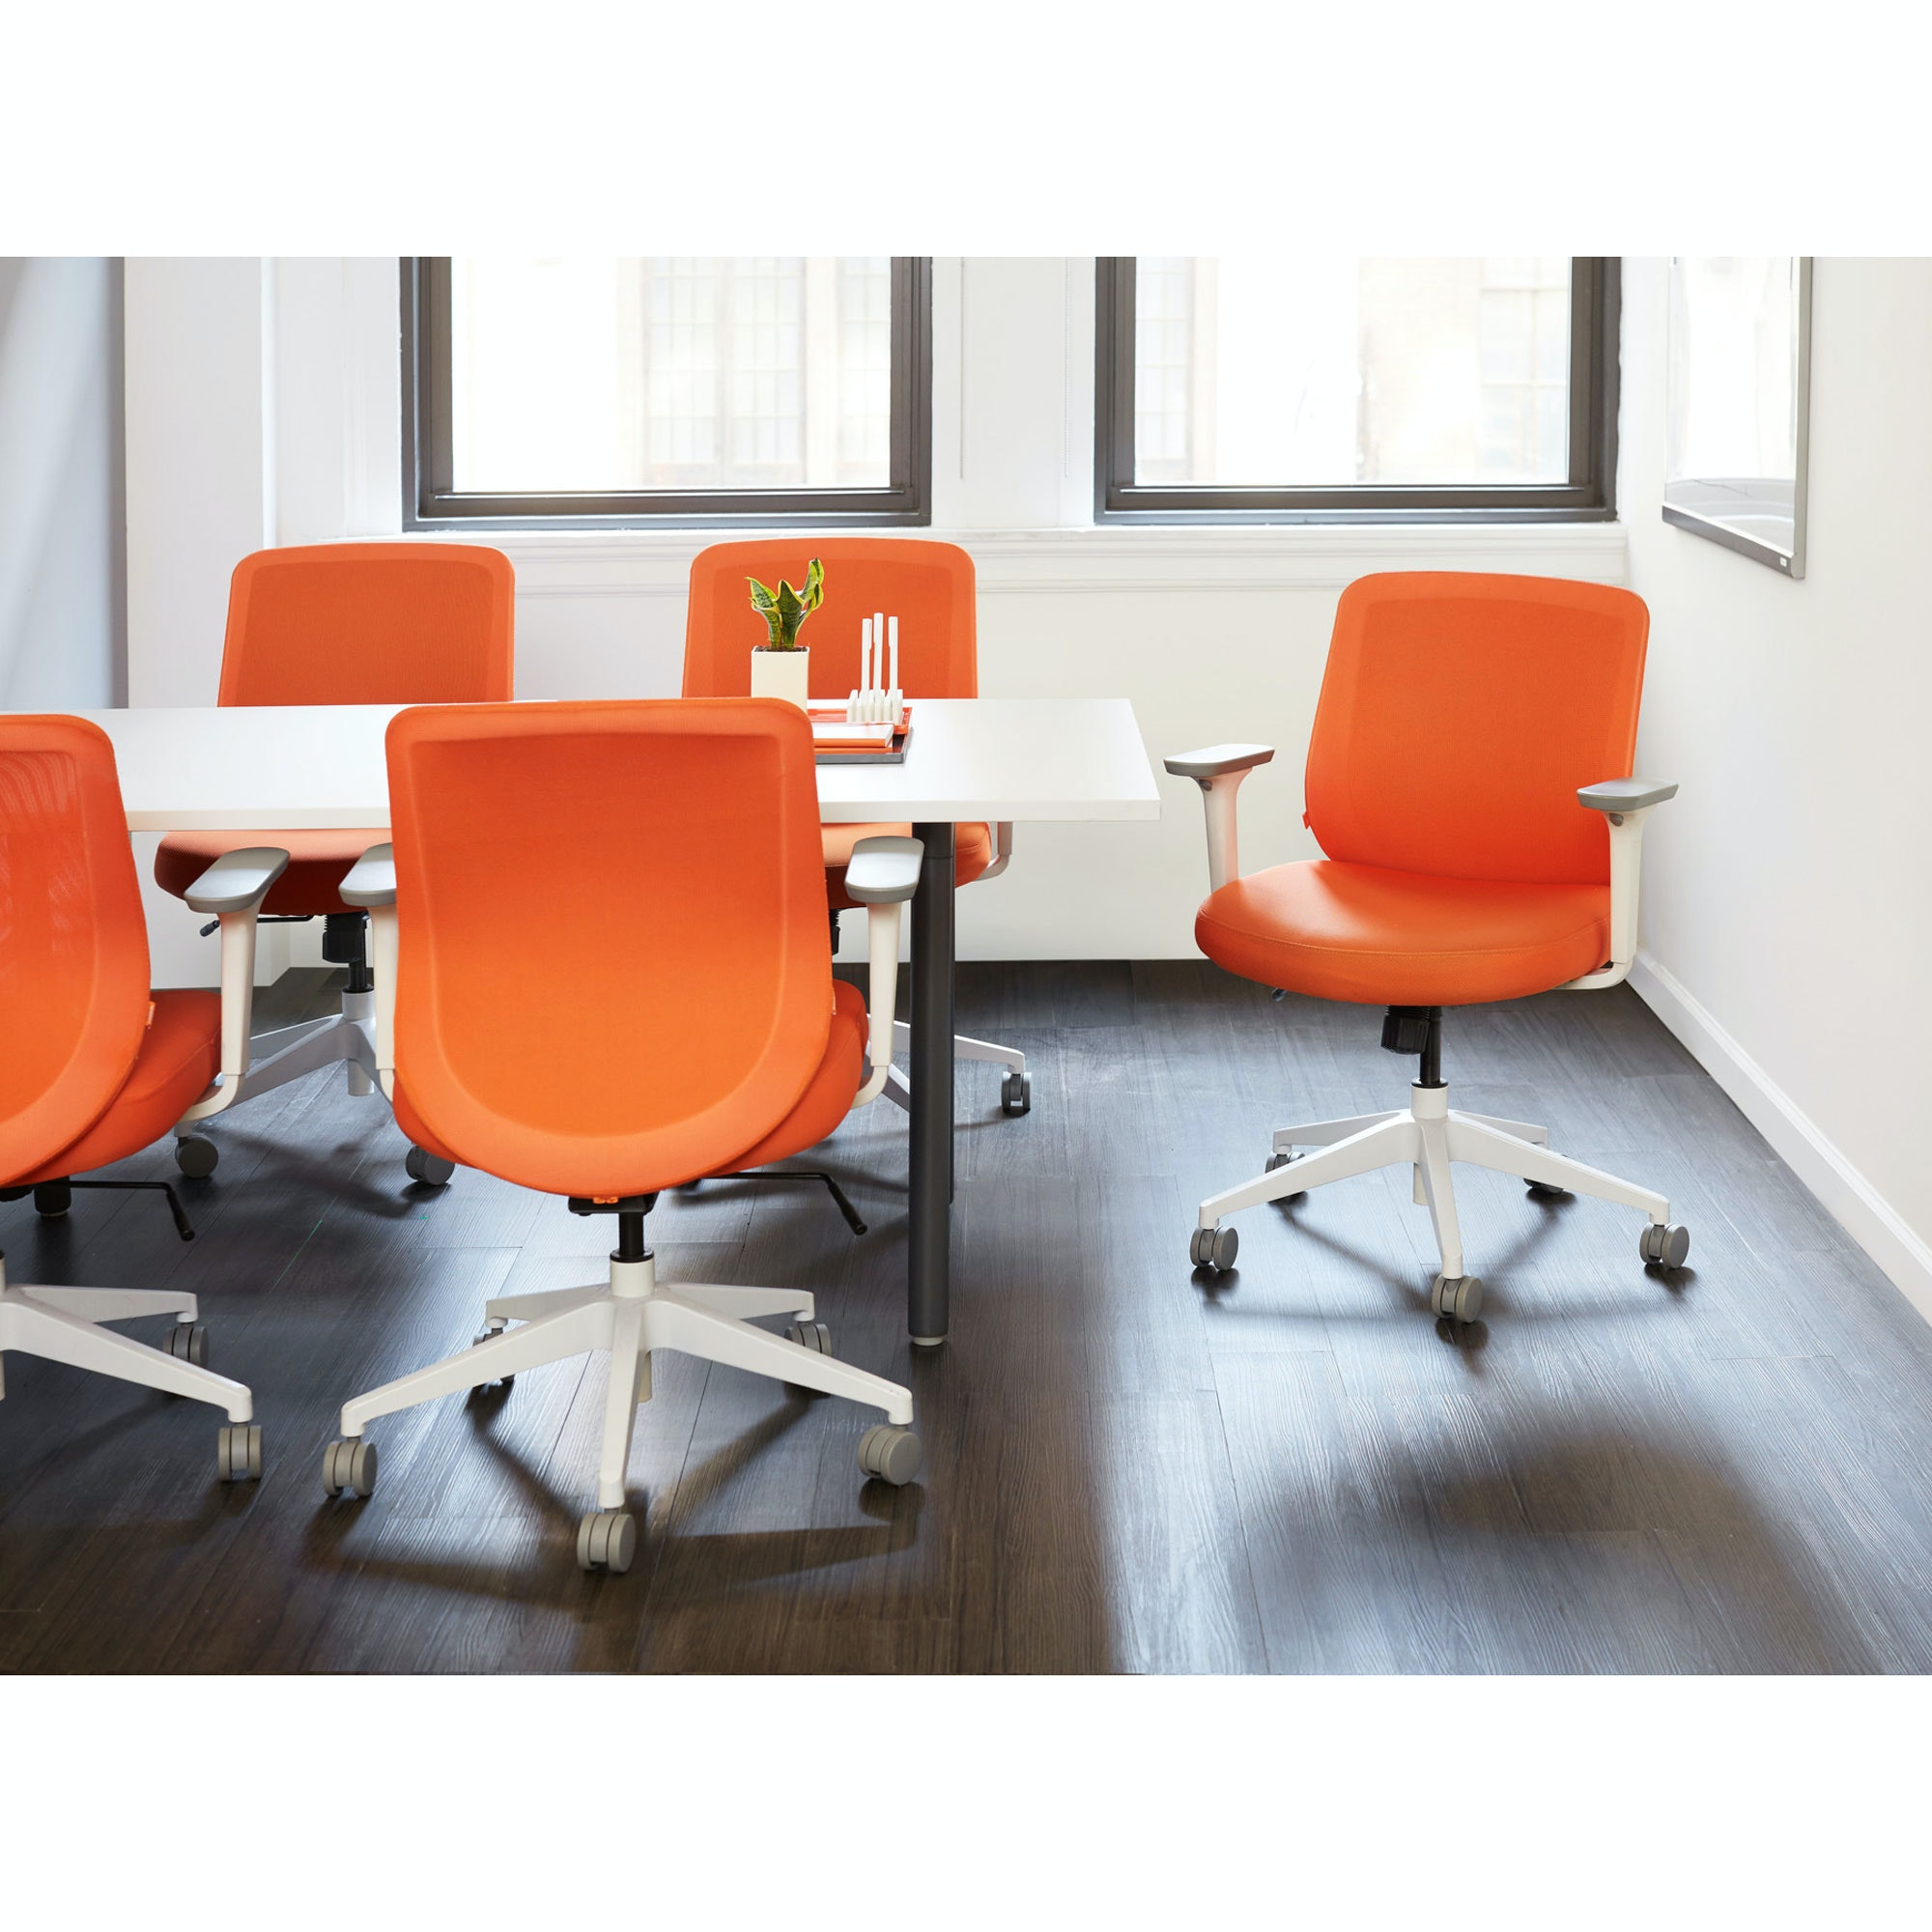 office orange. Orange Max Task Chair, Mid Back, White Frame,Orange,hi-res Office